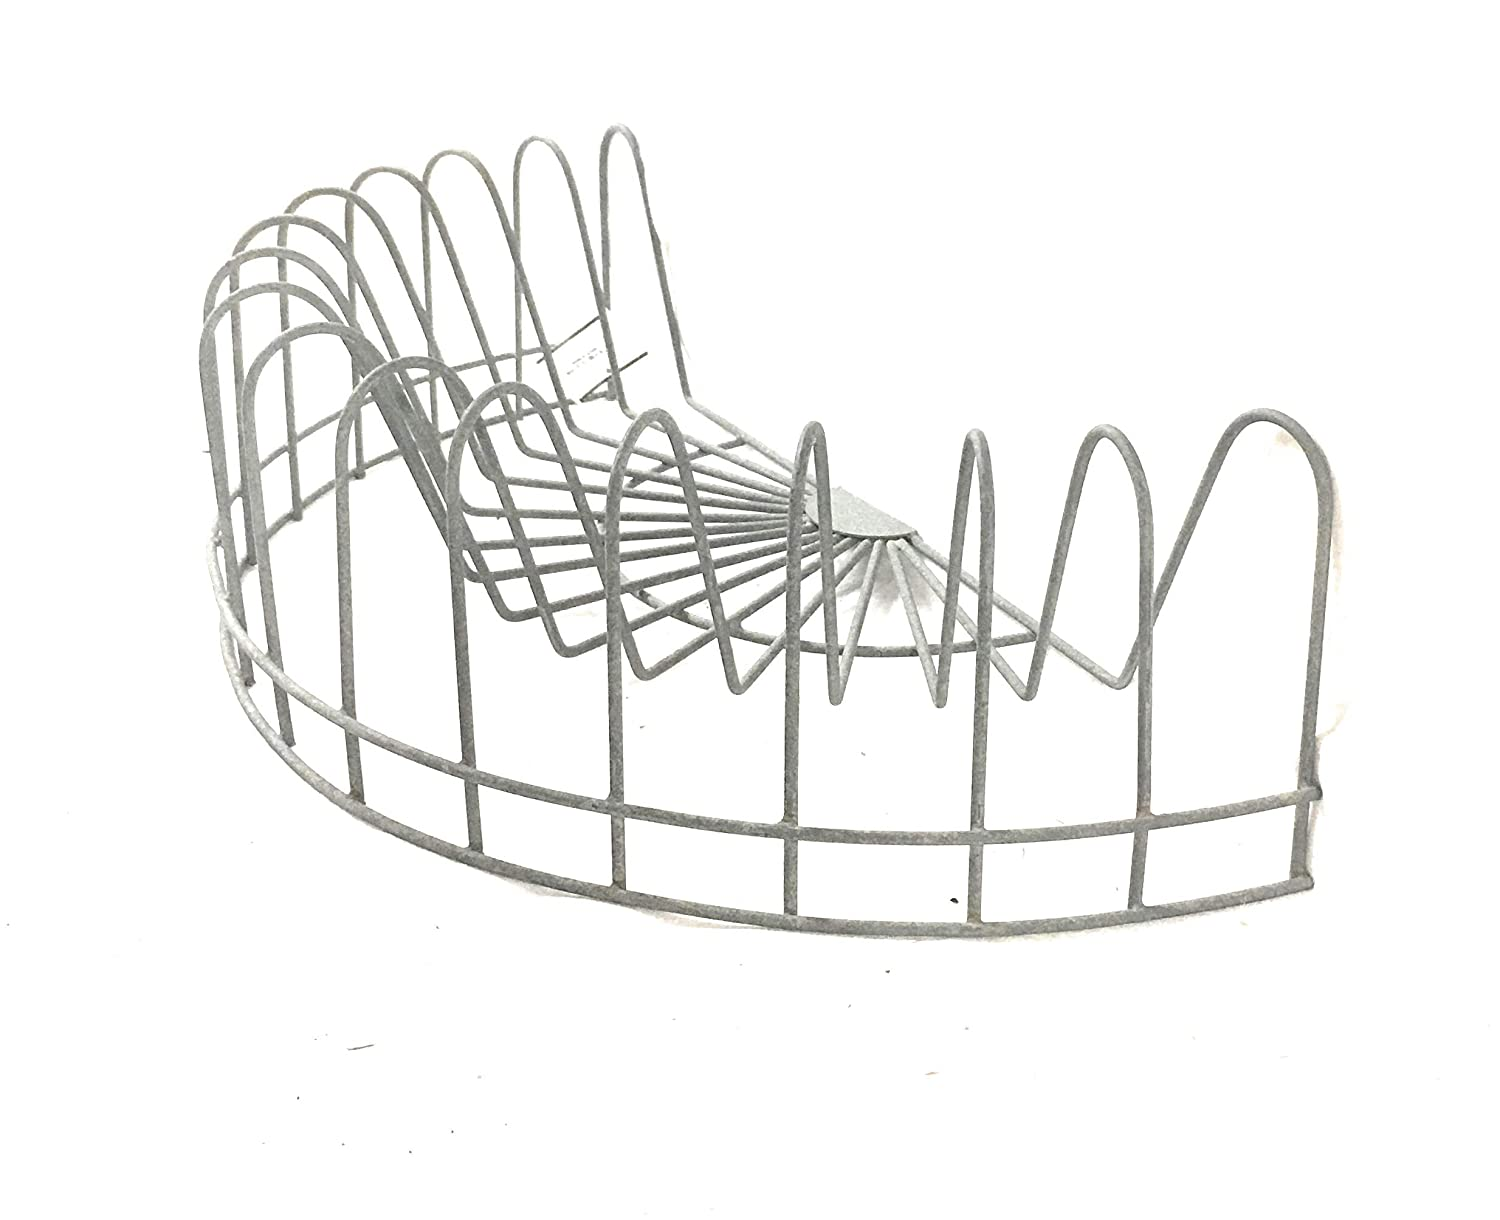 CTW Home Collection Vintage Style Rustic Wire Dish Rack, Plate Display, File Holder, Mail caddy, Card Holder,Gray,16' x 8' x 4.5' 16 x 8 x 4.5